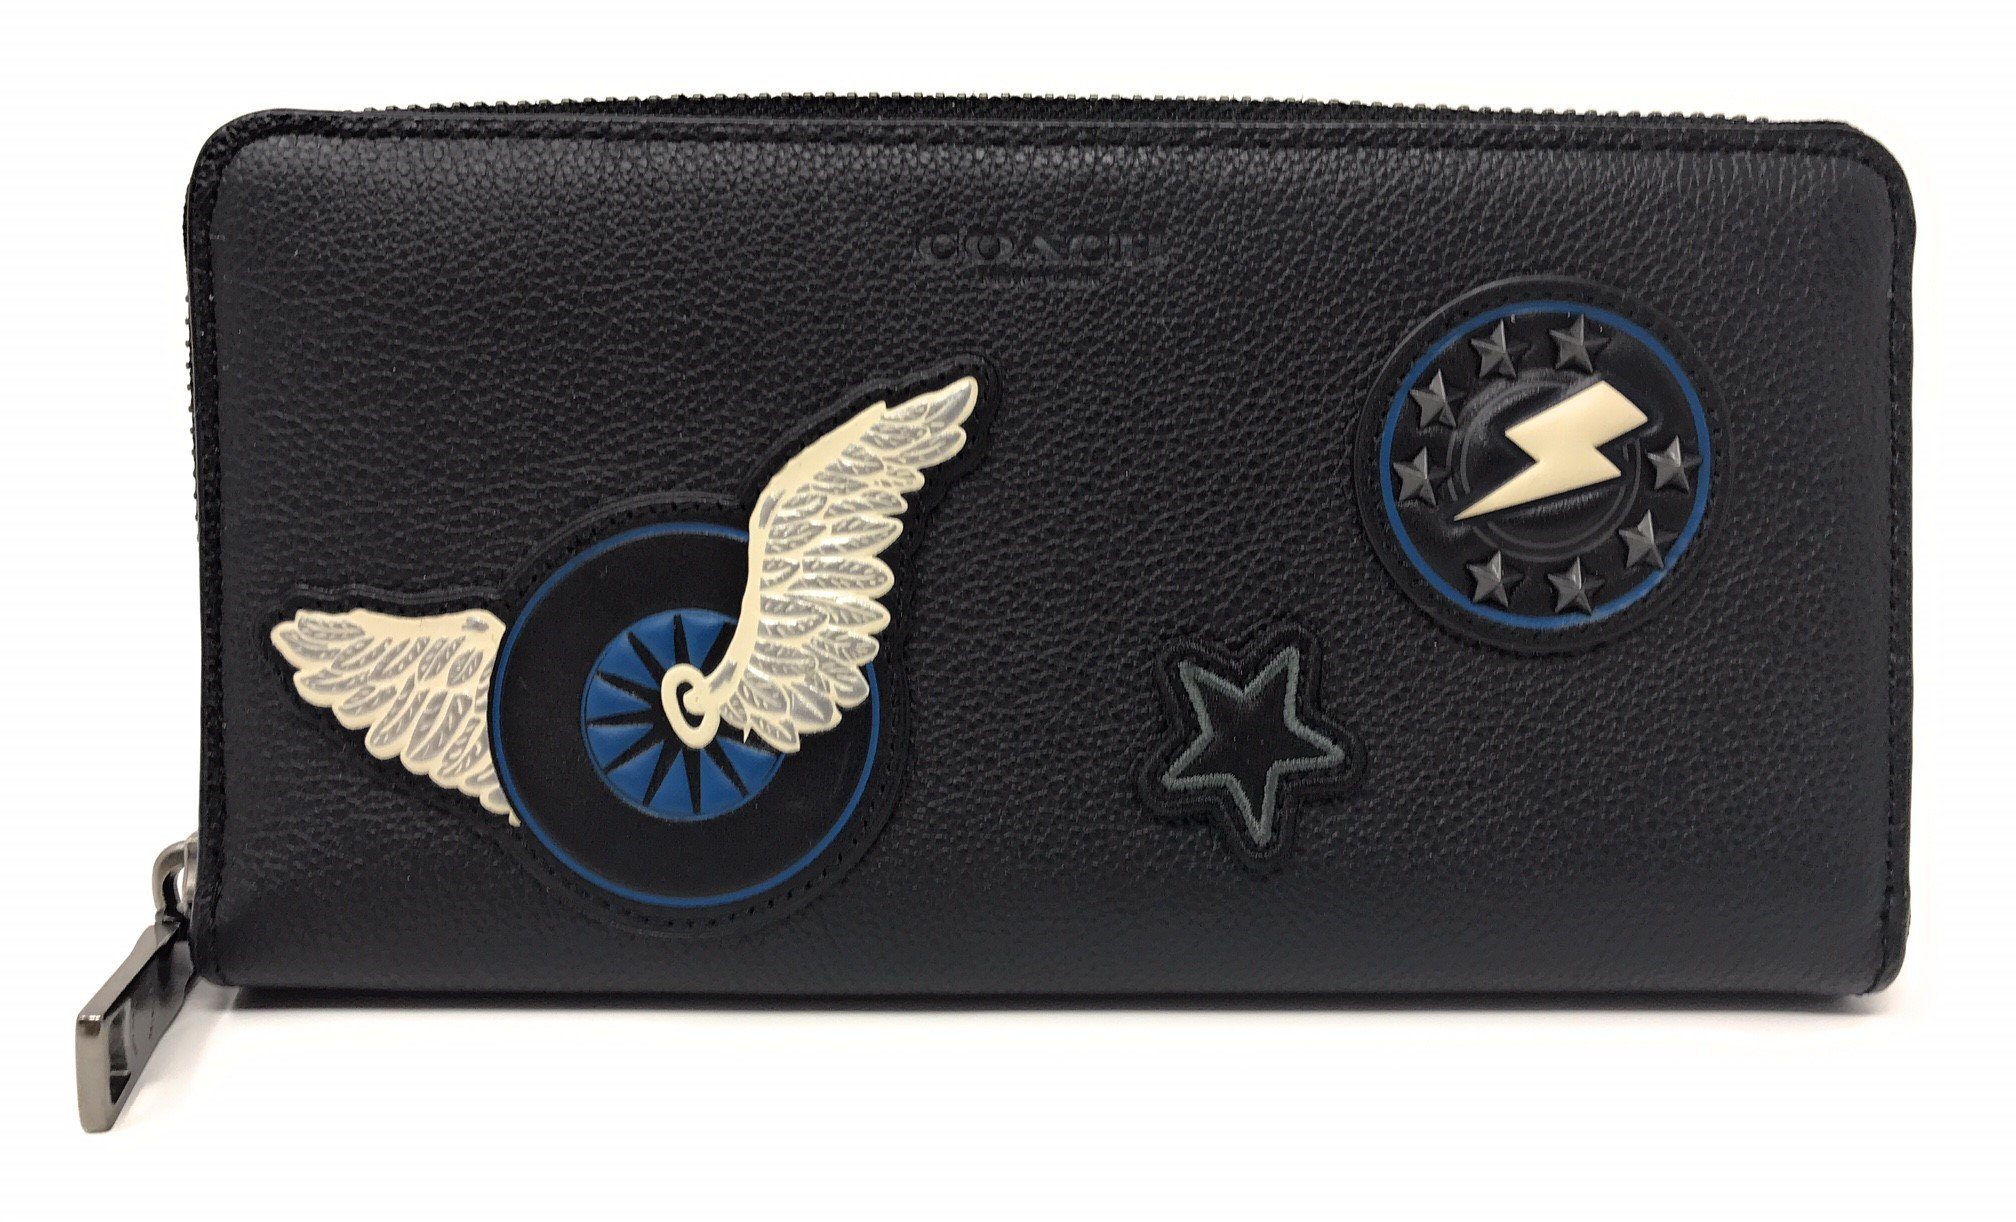 Coach Accordion Wallet in Leather with Varsity Patches Black